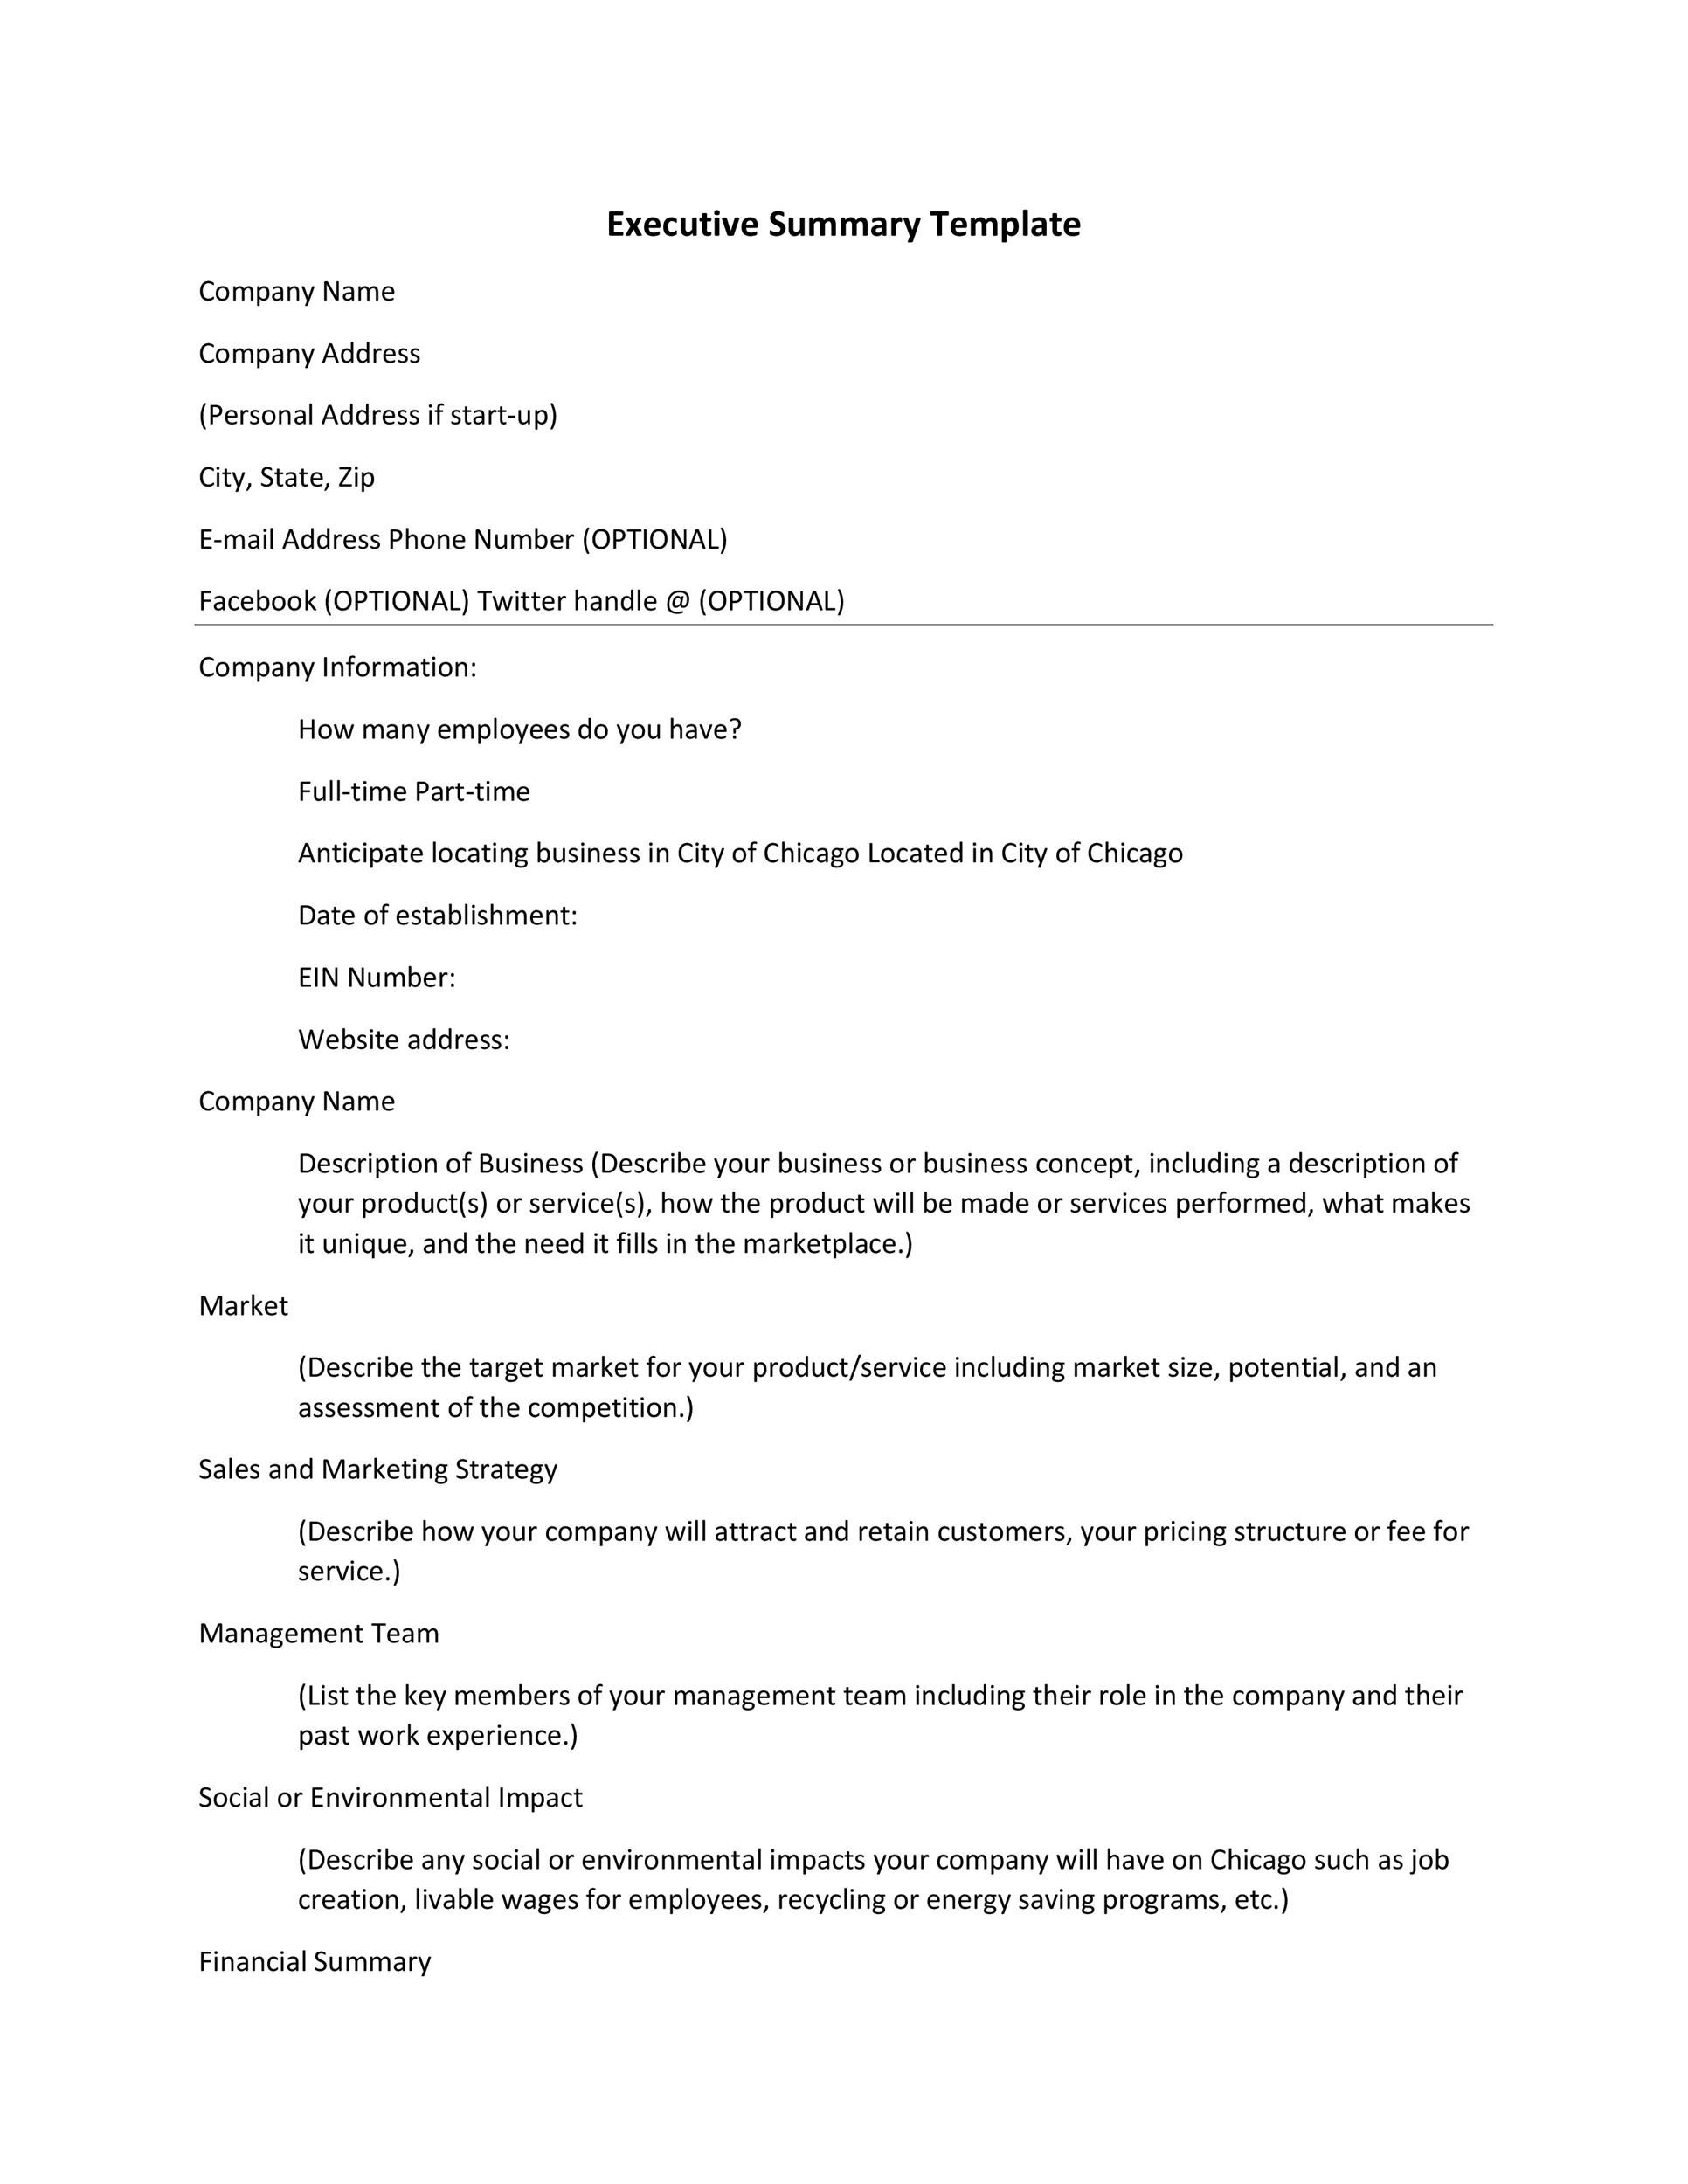 5 Executive Summary Business Plan Template – Executive Summary Template